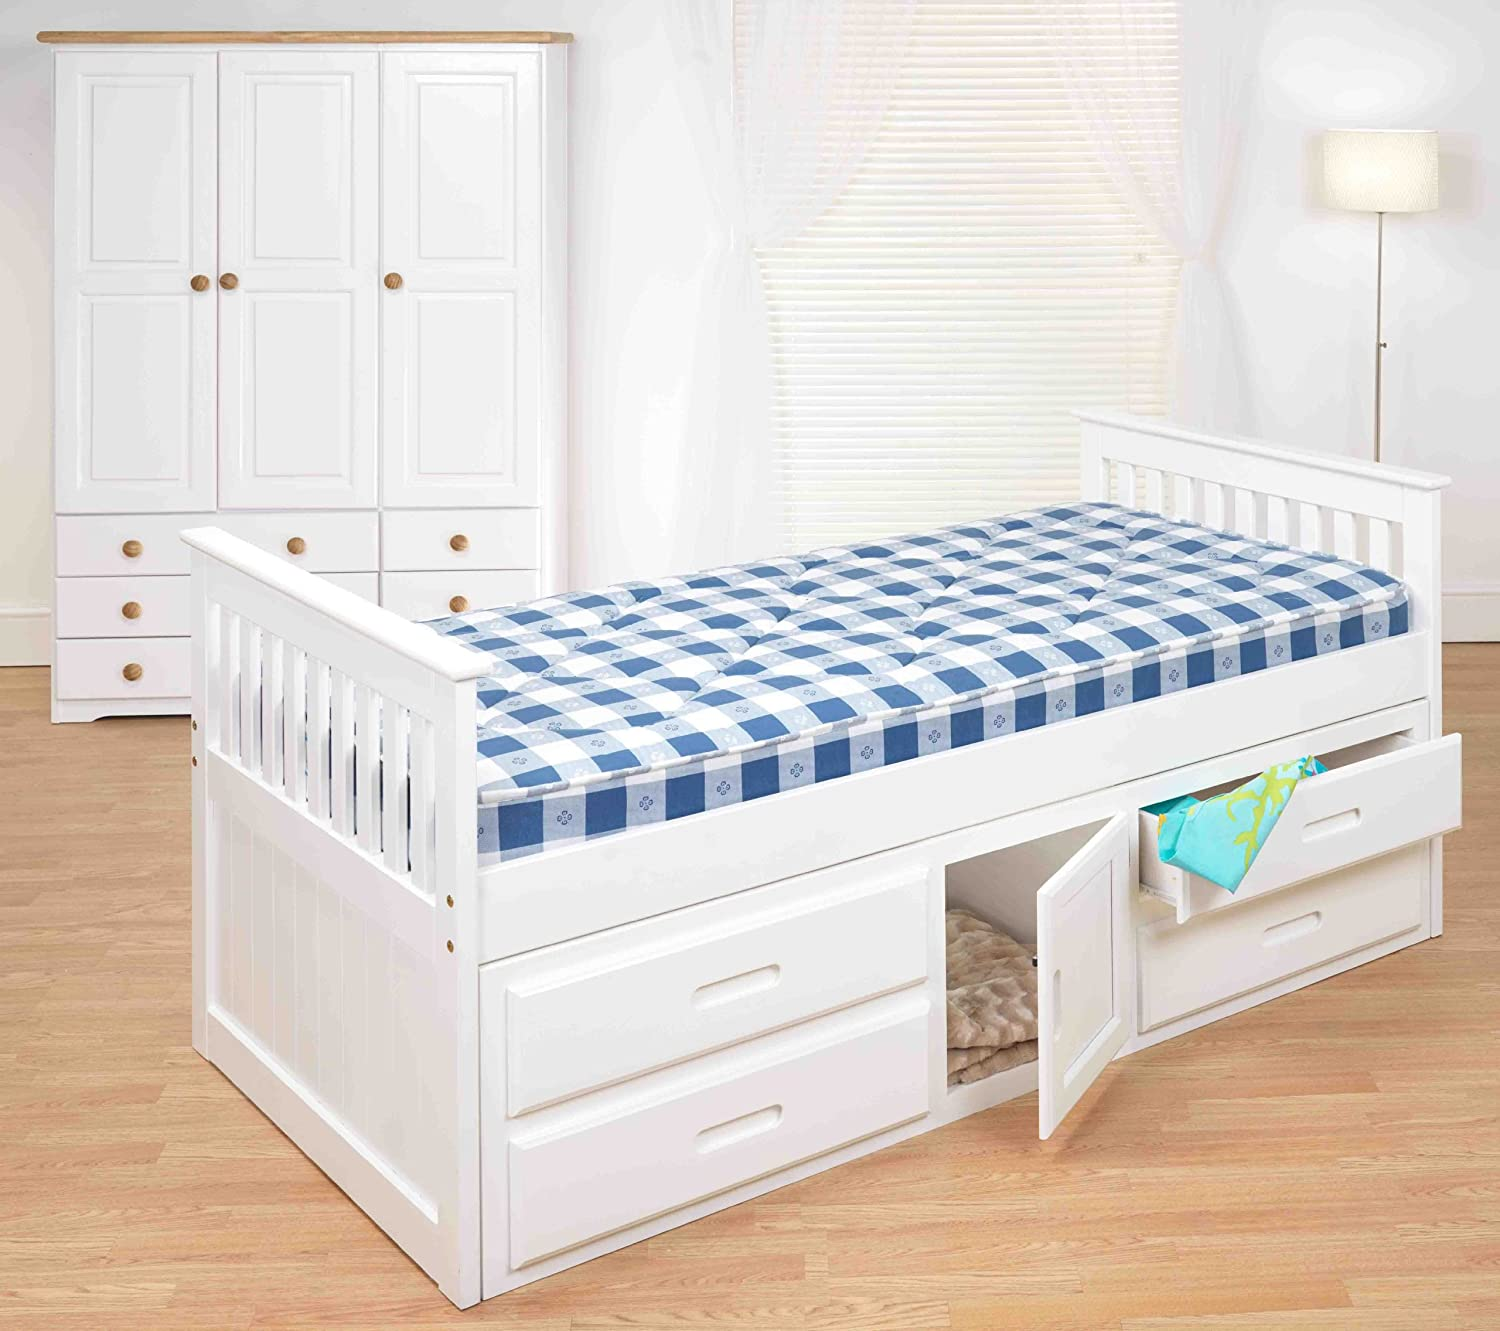 Single bed frame with drawers - Cloudseller 3ft Single Captain Cabin Storage Solid Pine Wooden Bed Bedframe White Pine Finish Amazon Co Uk Kitchen Home